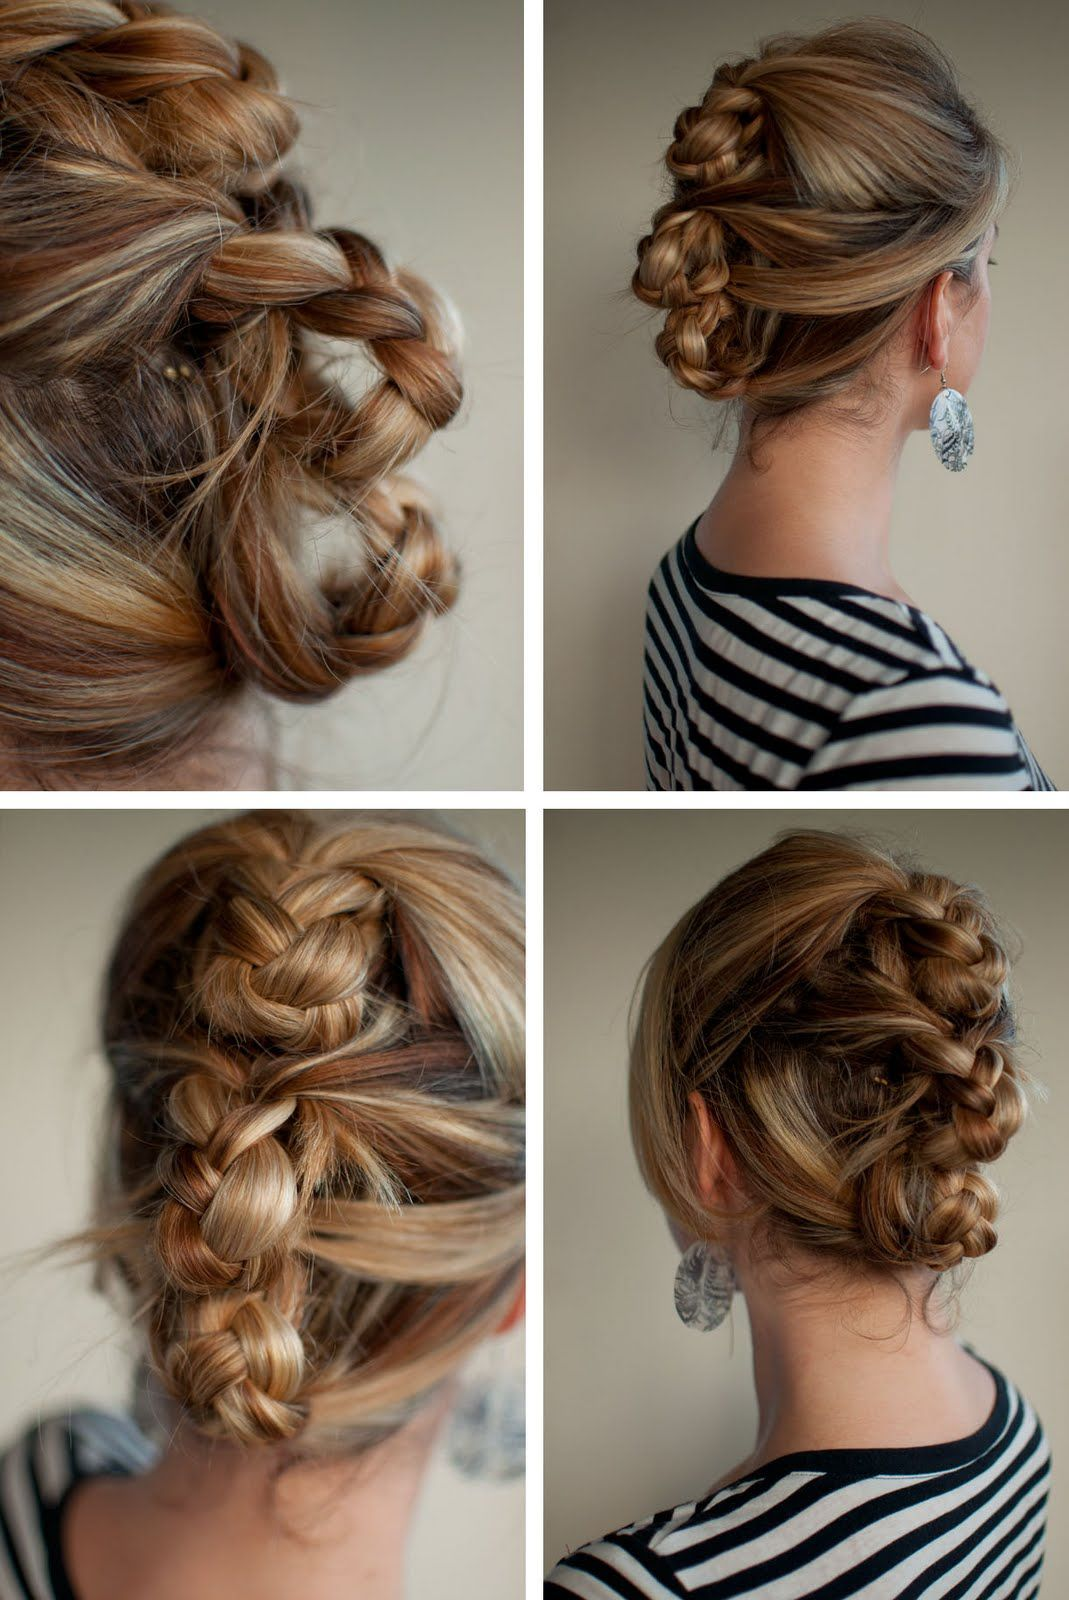 Plaited Roll Hairstyle Collage Jpg 1069 1600 Hair Styles Hair Romance Roll Hairstyle